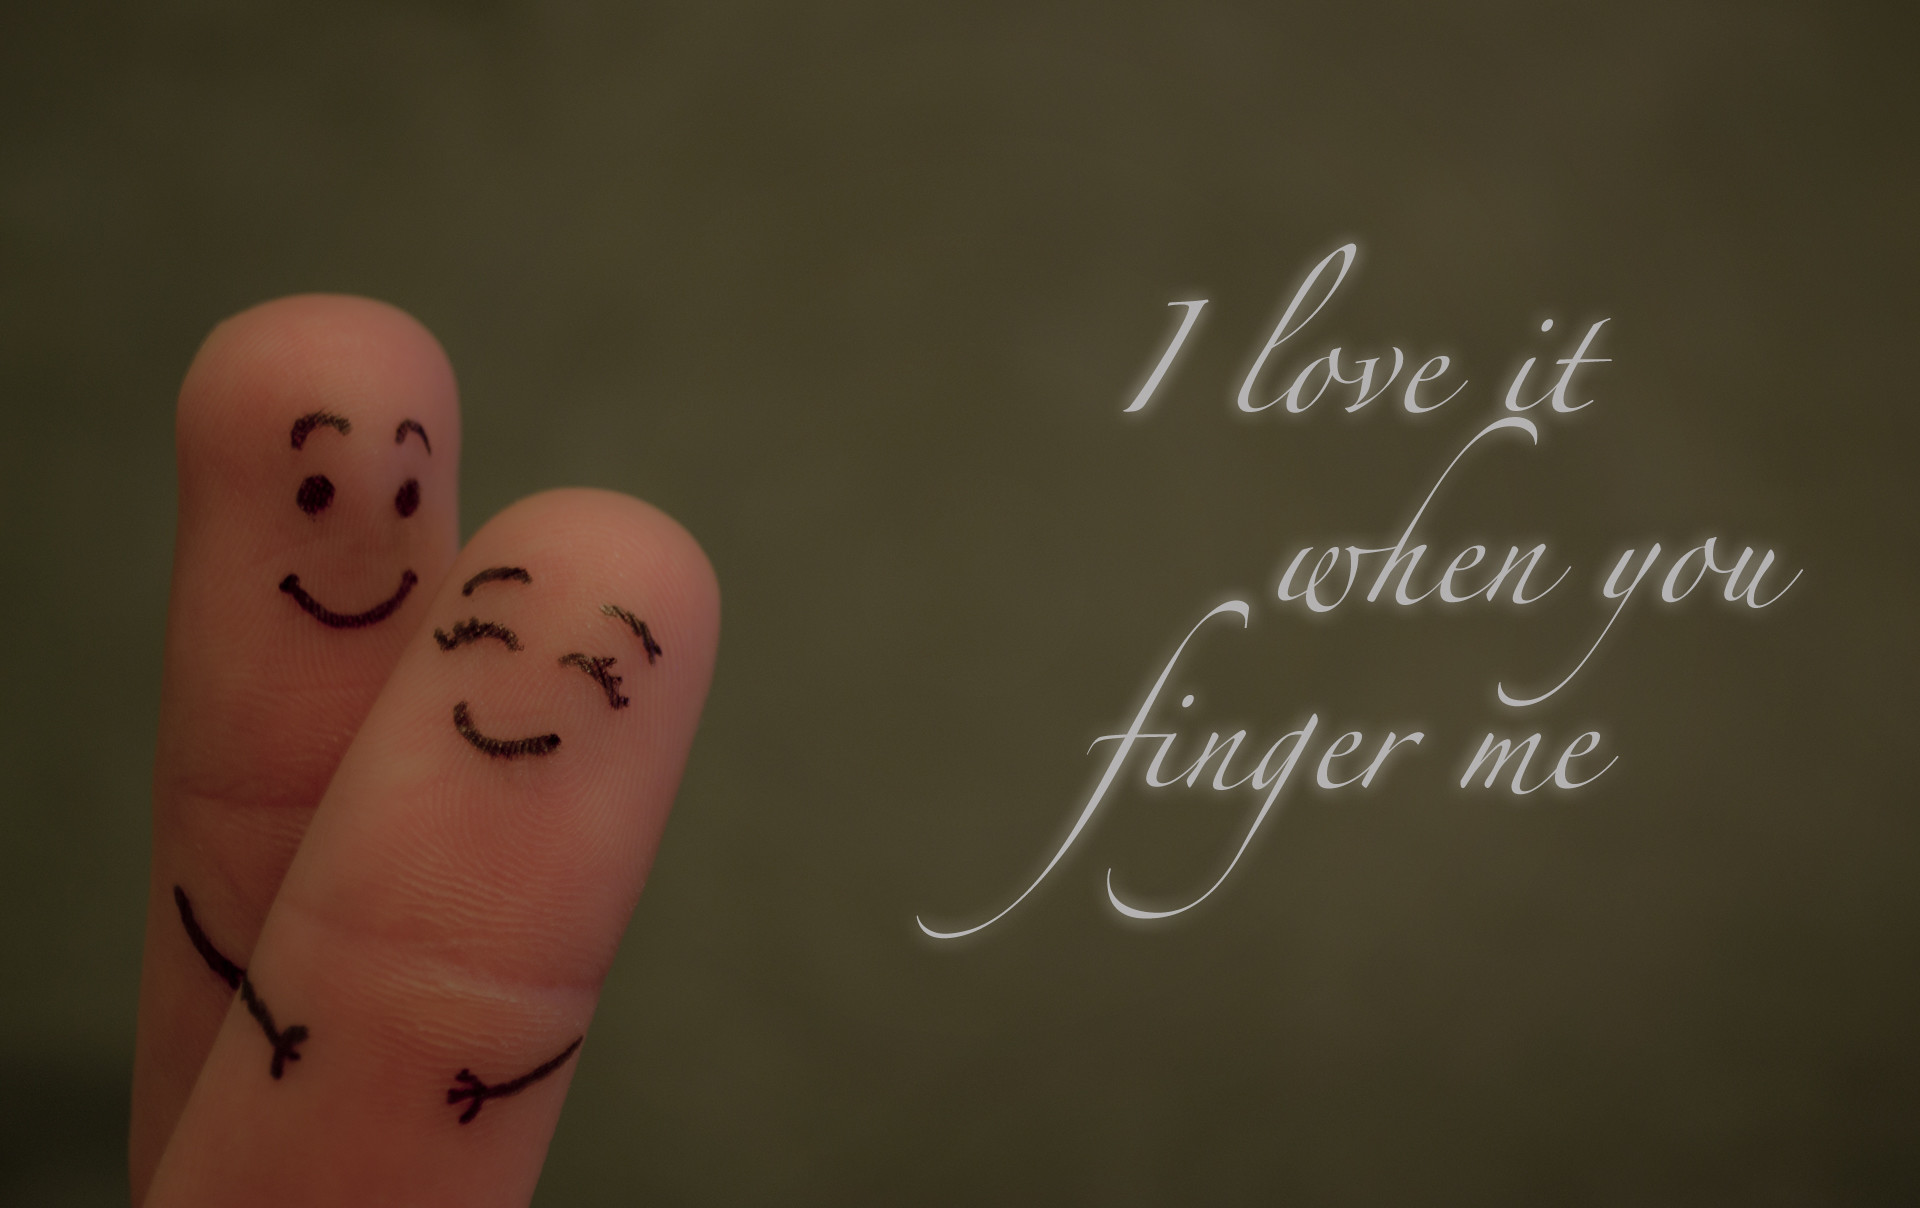 cute finger love scene like hug with quotes HD wallpaper .